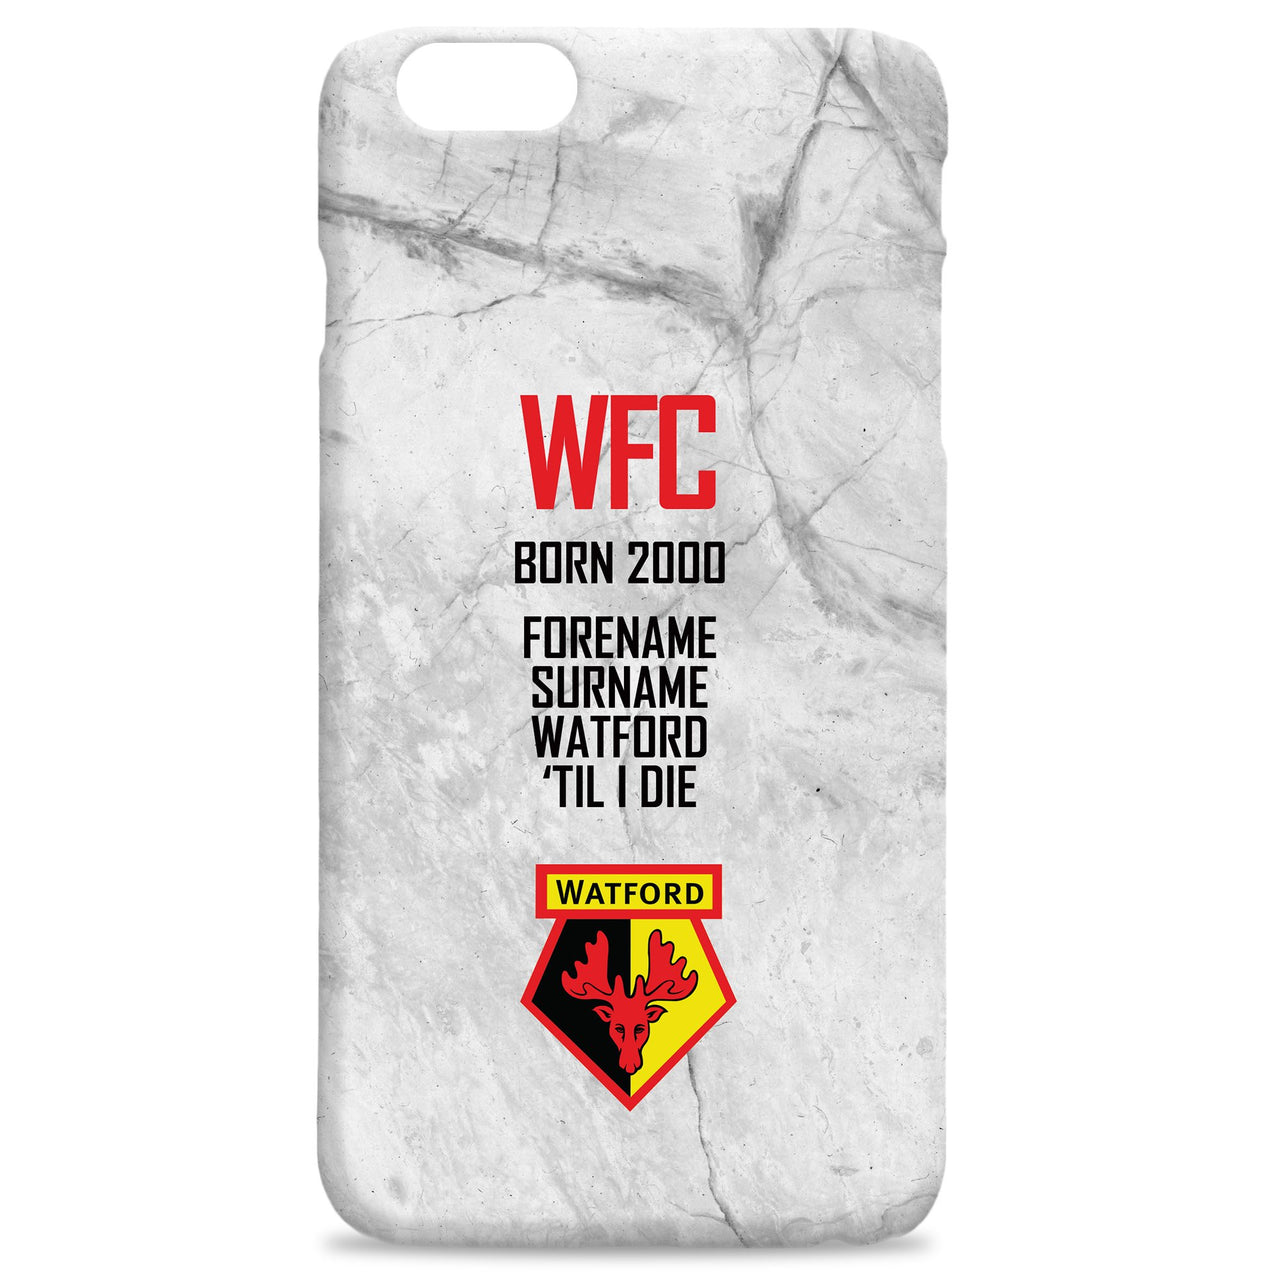 Watford FC 'Til I Die Hard Back Phone Case, Gifts